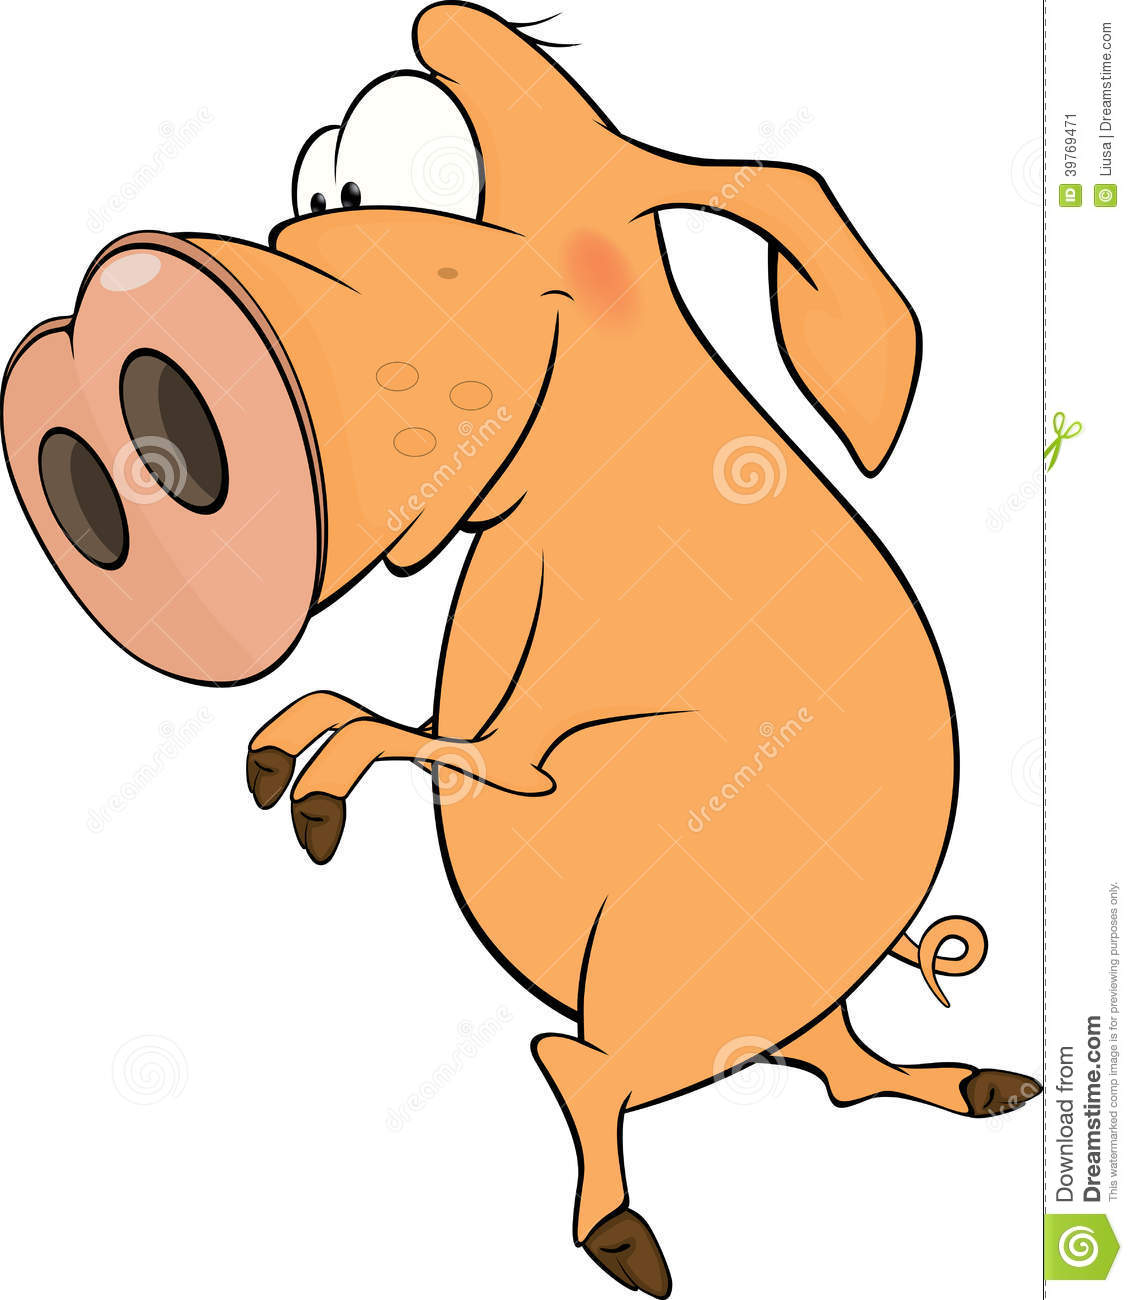 Cartoon Characters With Big Noses : Pig cartoon stock vector image